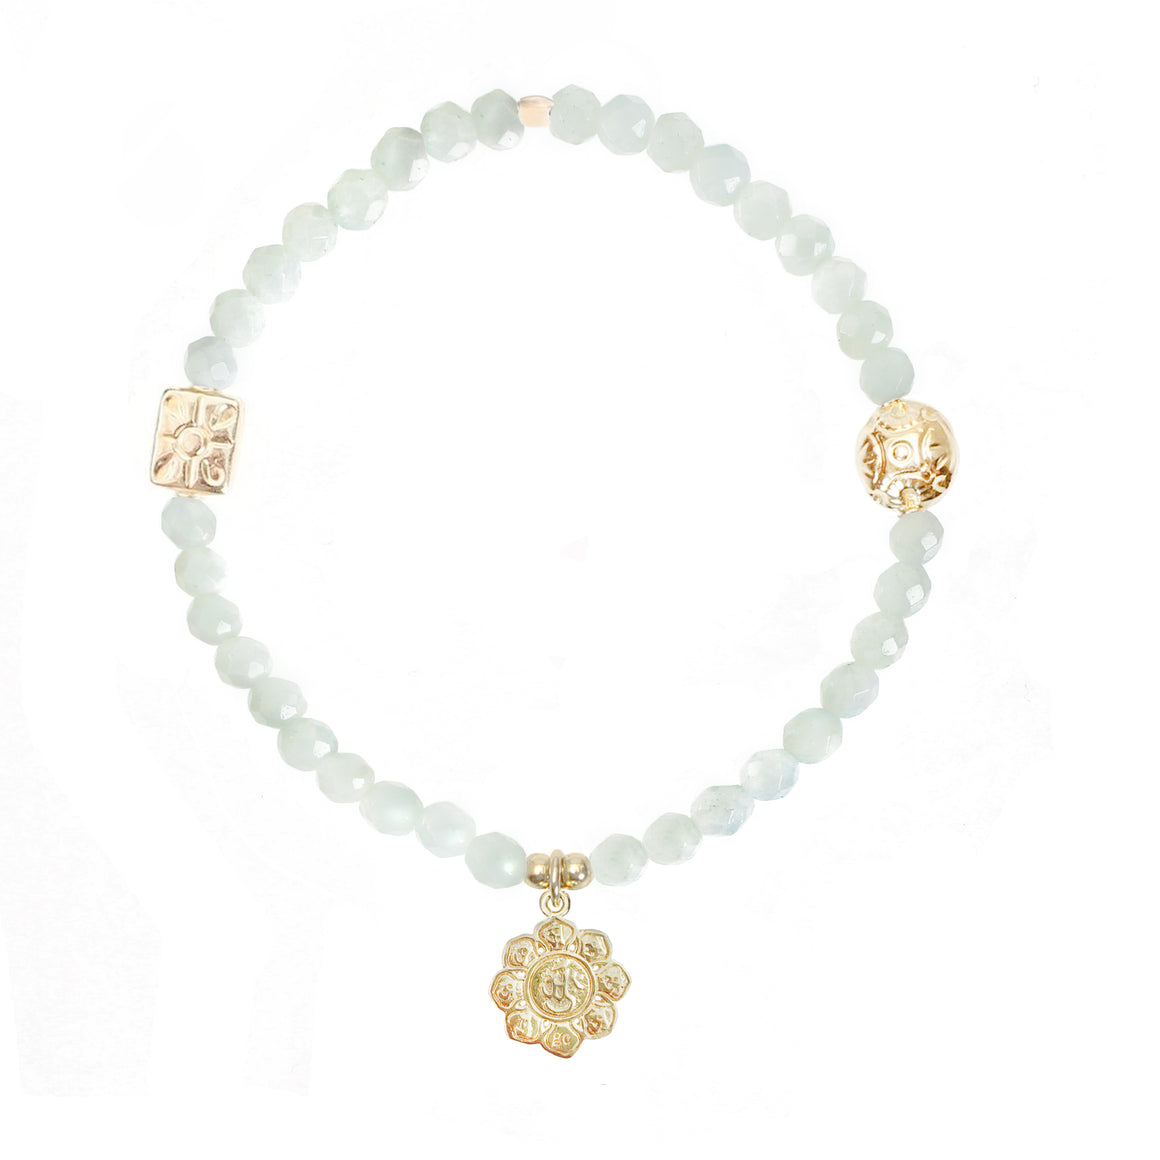 Lotus Flower Bracelet in Gold